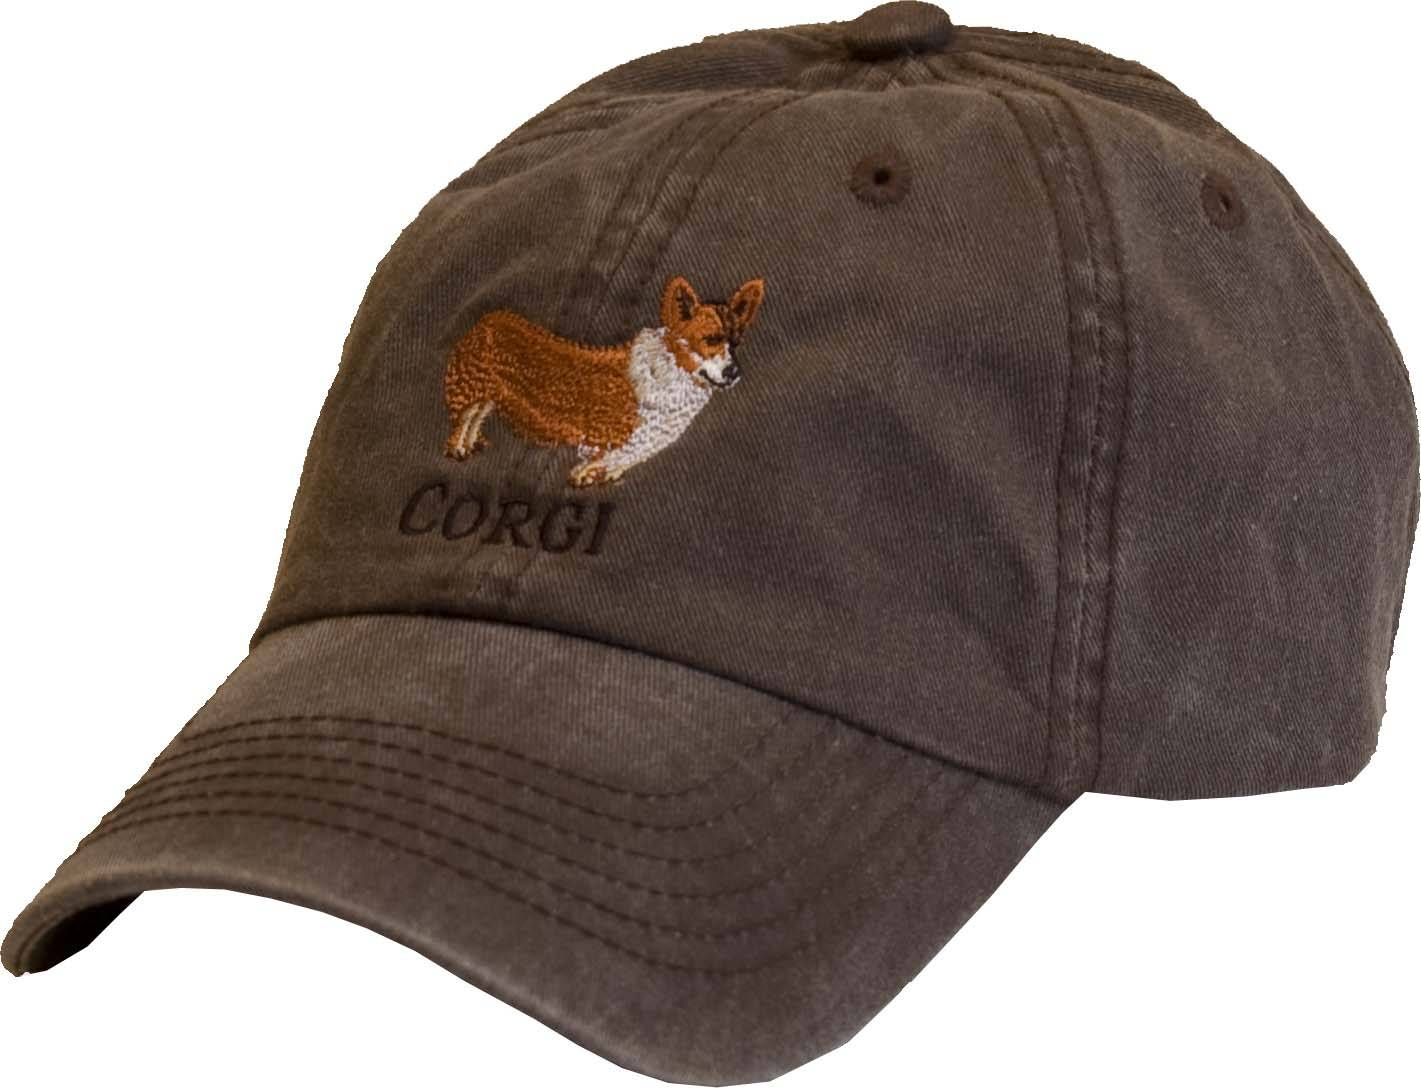 Stirrups Ladies Embroidered Corgi Cotton Twill Cap